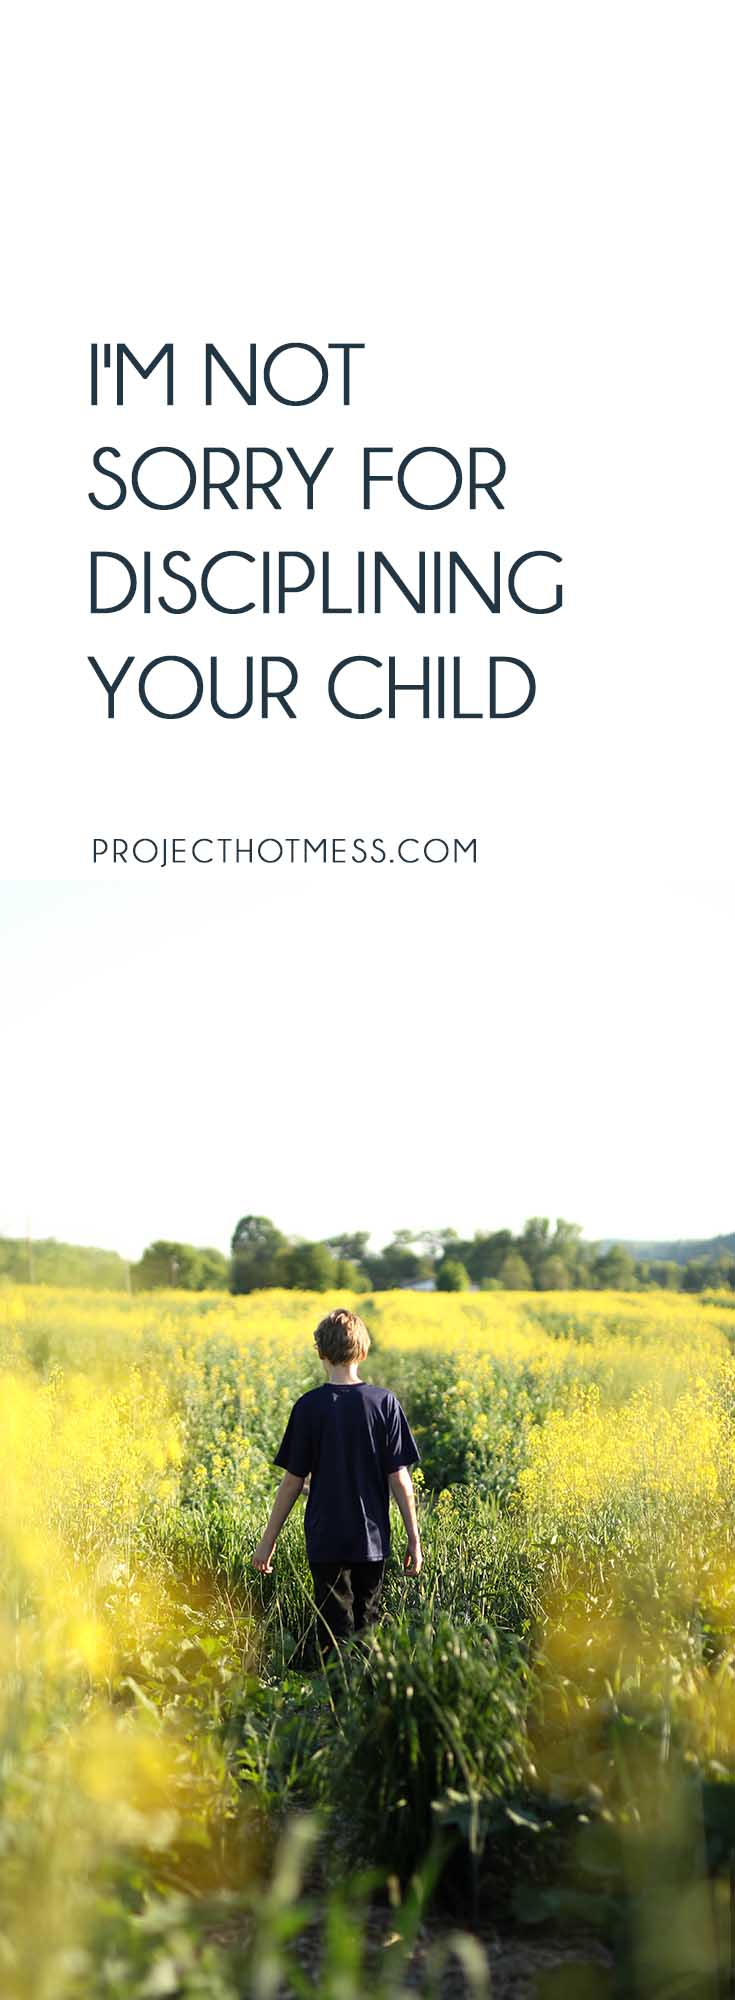 An honest letter from one Momma to another. Hopefully we see eye to eye on this one because when I'm being honest, I'm not sorry for disciplining your child. Parenting | Motherhood | Raising Boys | Raising Children | Discipline for Children